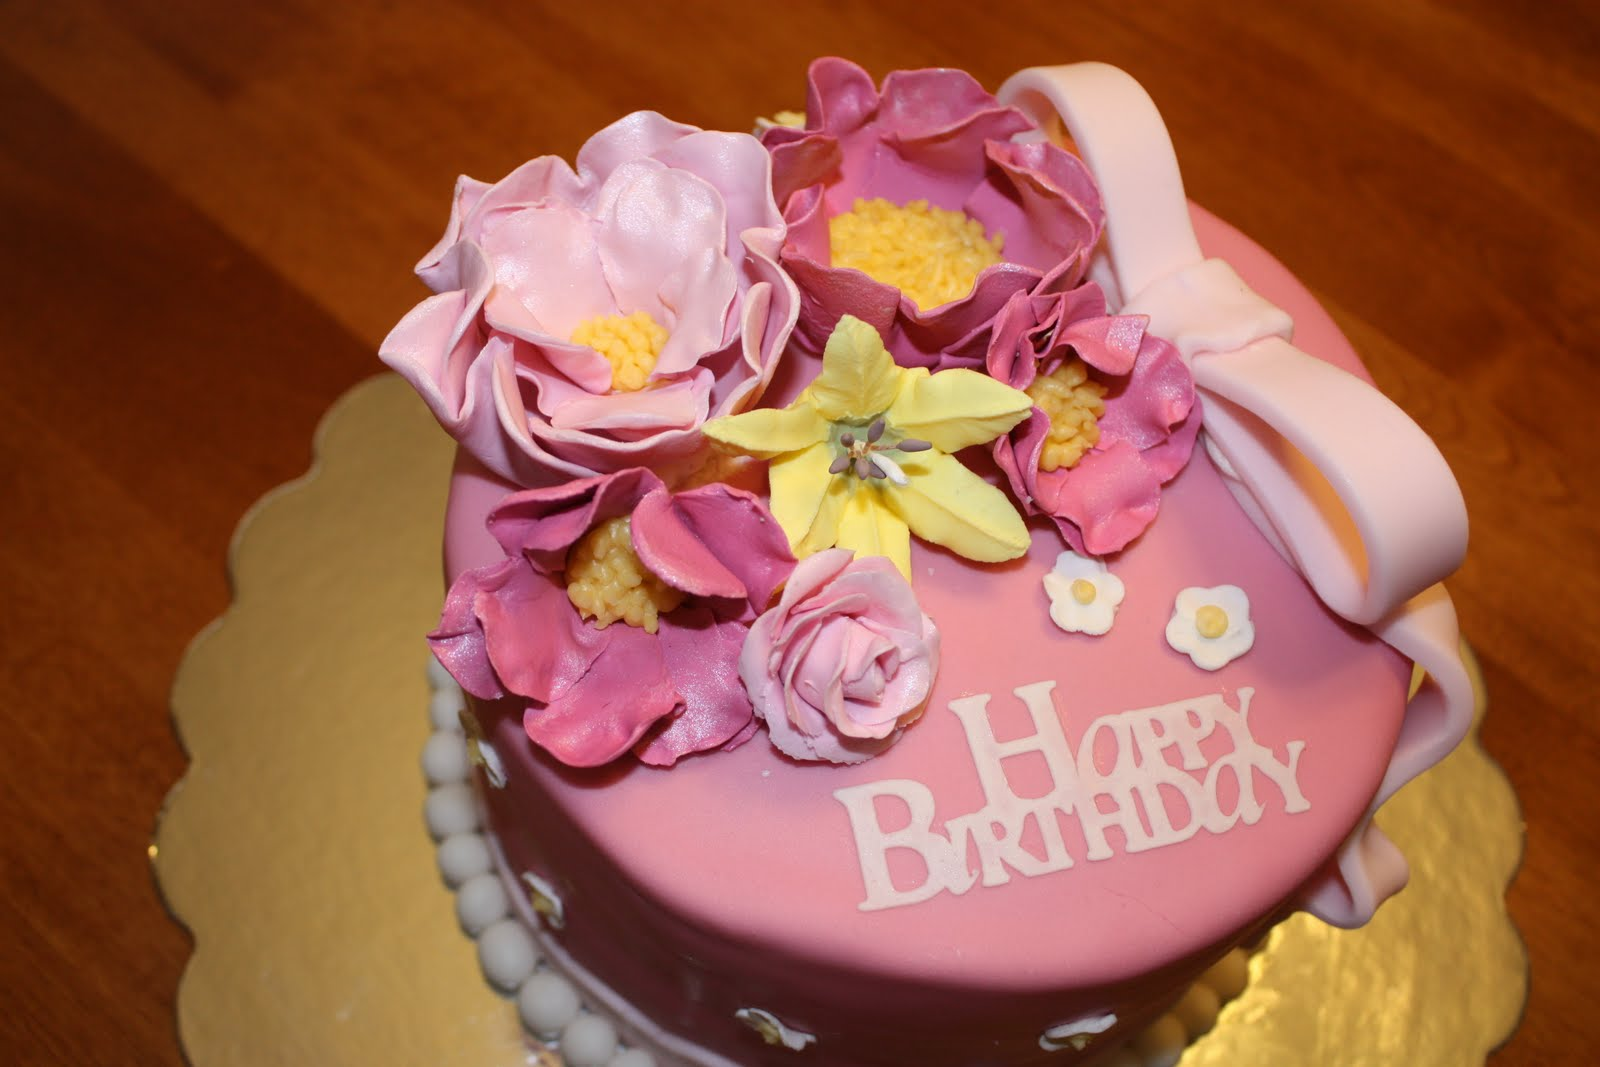 The Collection Of Meaningful And Touching Birthday Wishes For